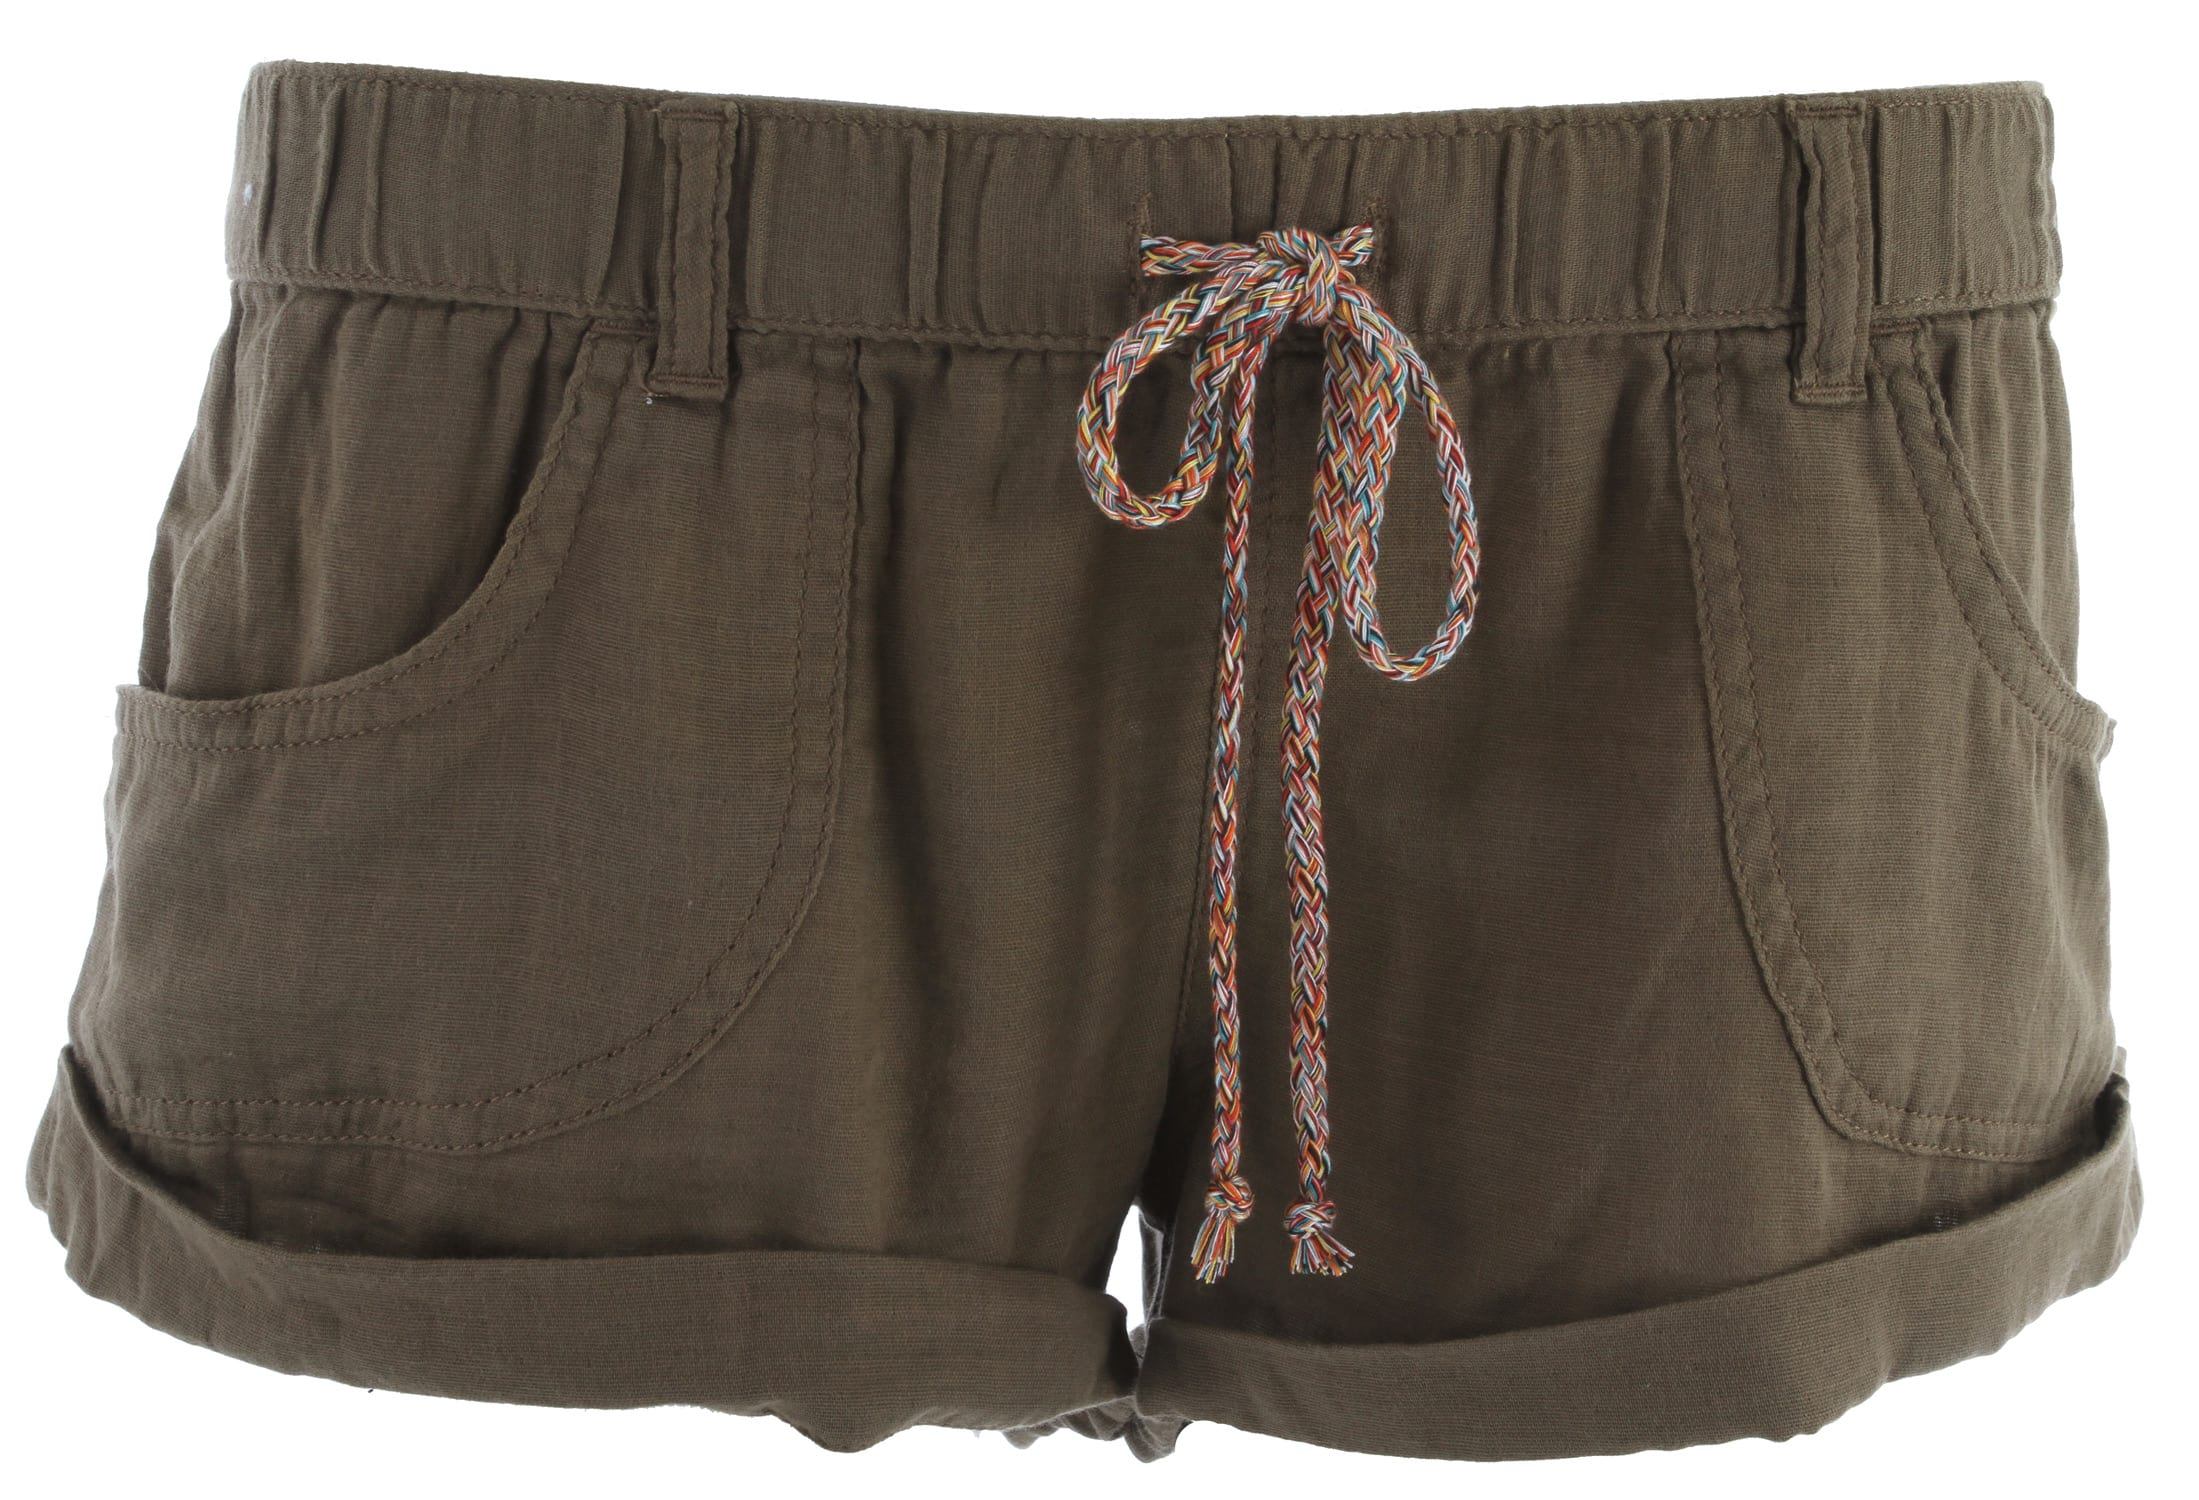 Shop for Roxy Nomad Shorts Alloy Brown - Women's